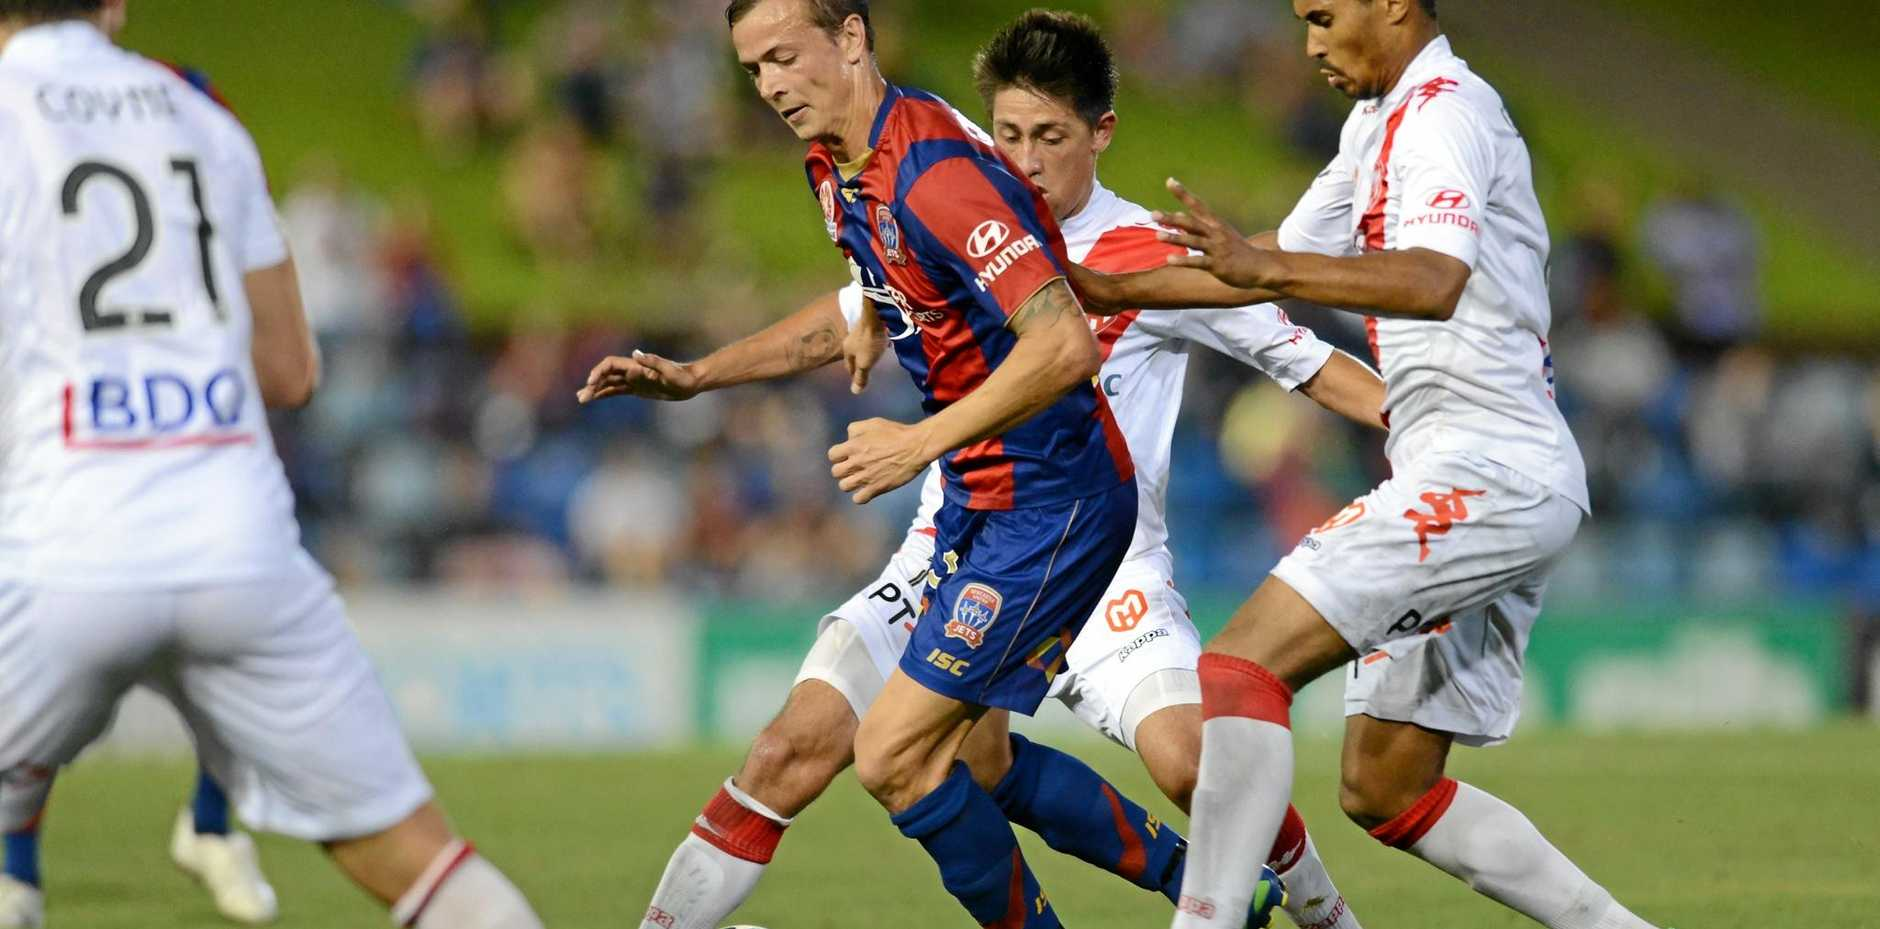 Ryan Griffiths playing for the Newcastle Jets in 2013.